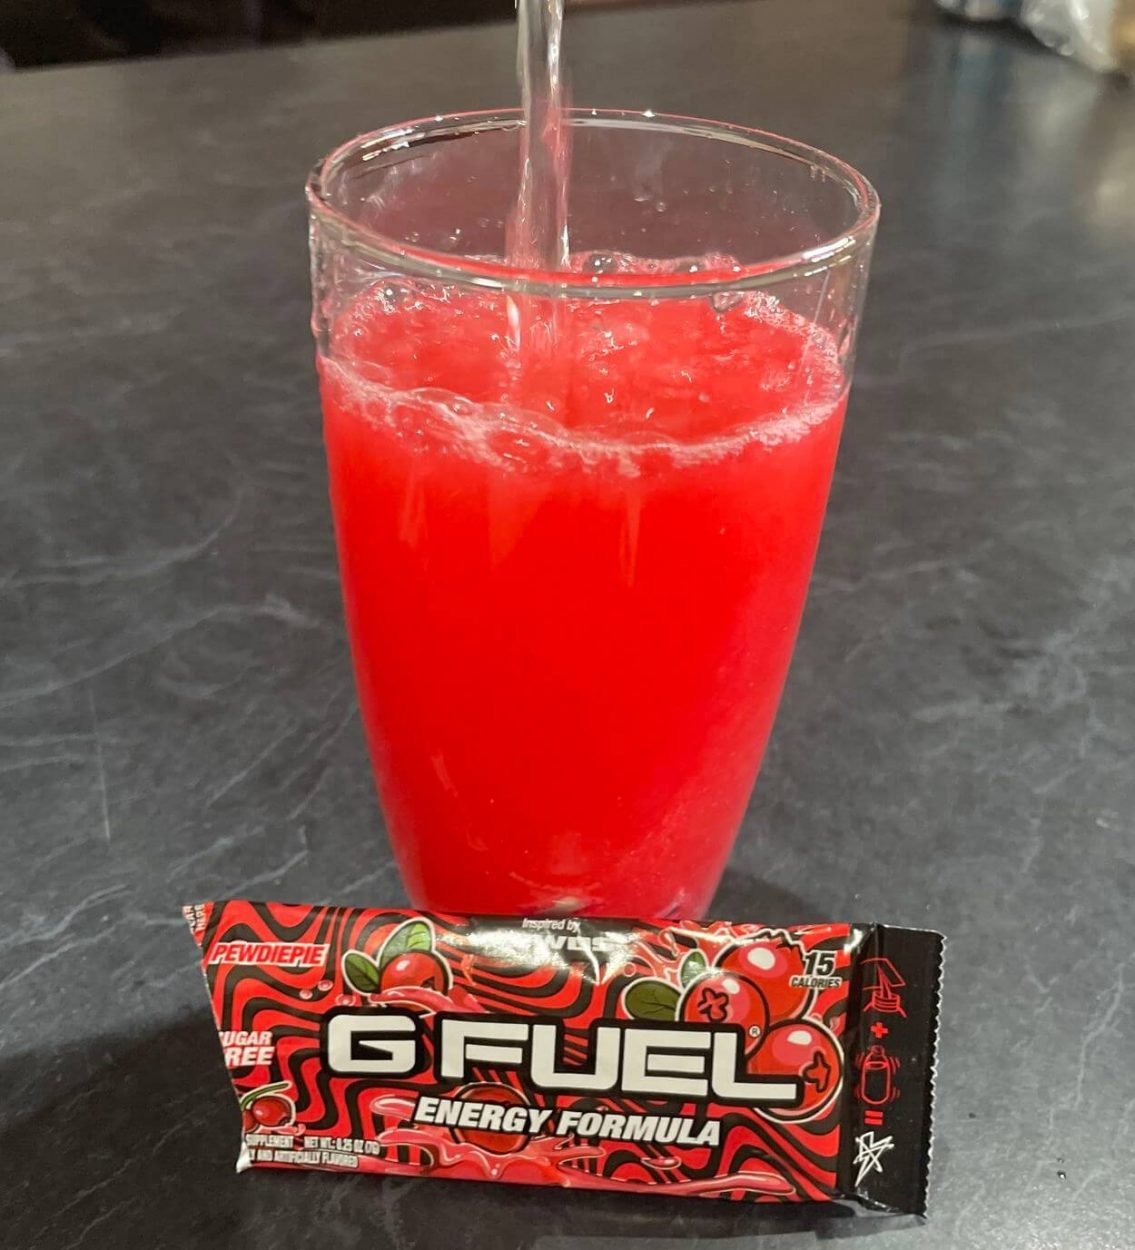 Pewds G Fuel flavor mixed in a glass